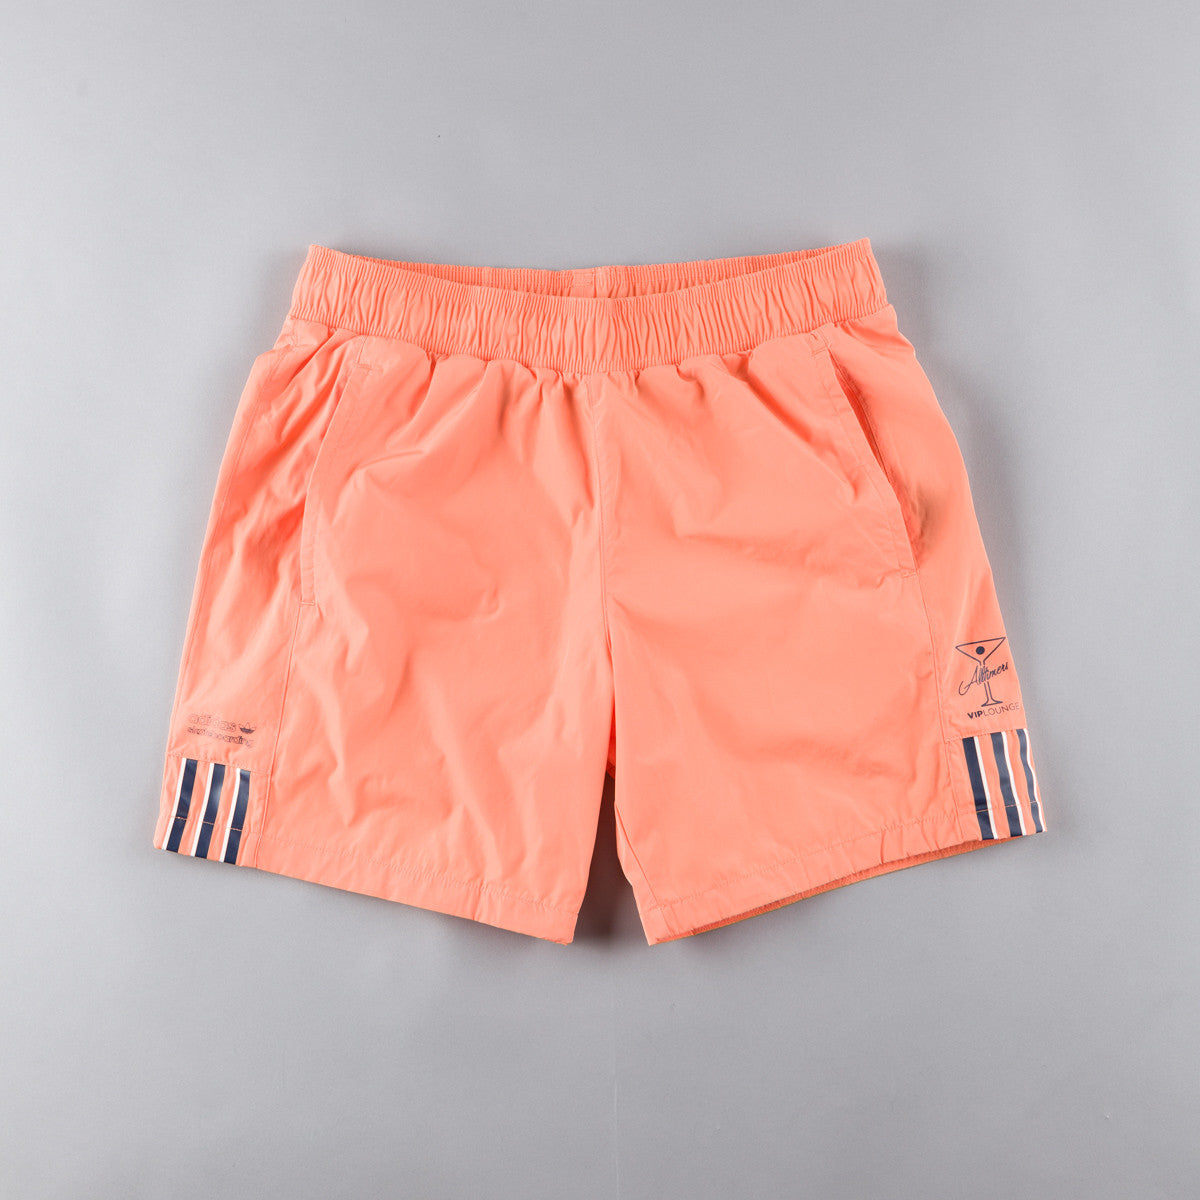 Adidas x Alltimers Shorts